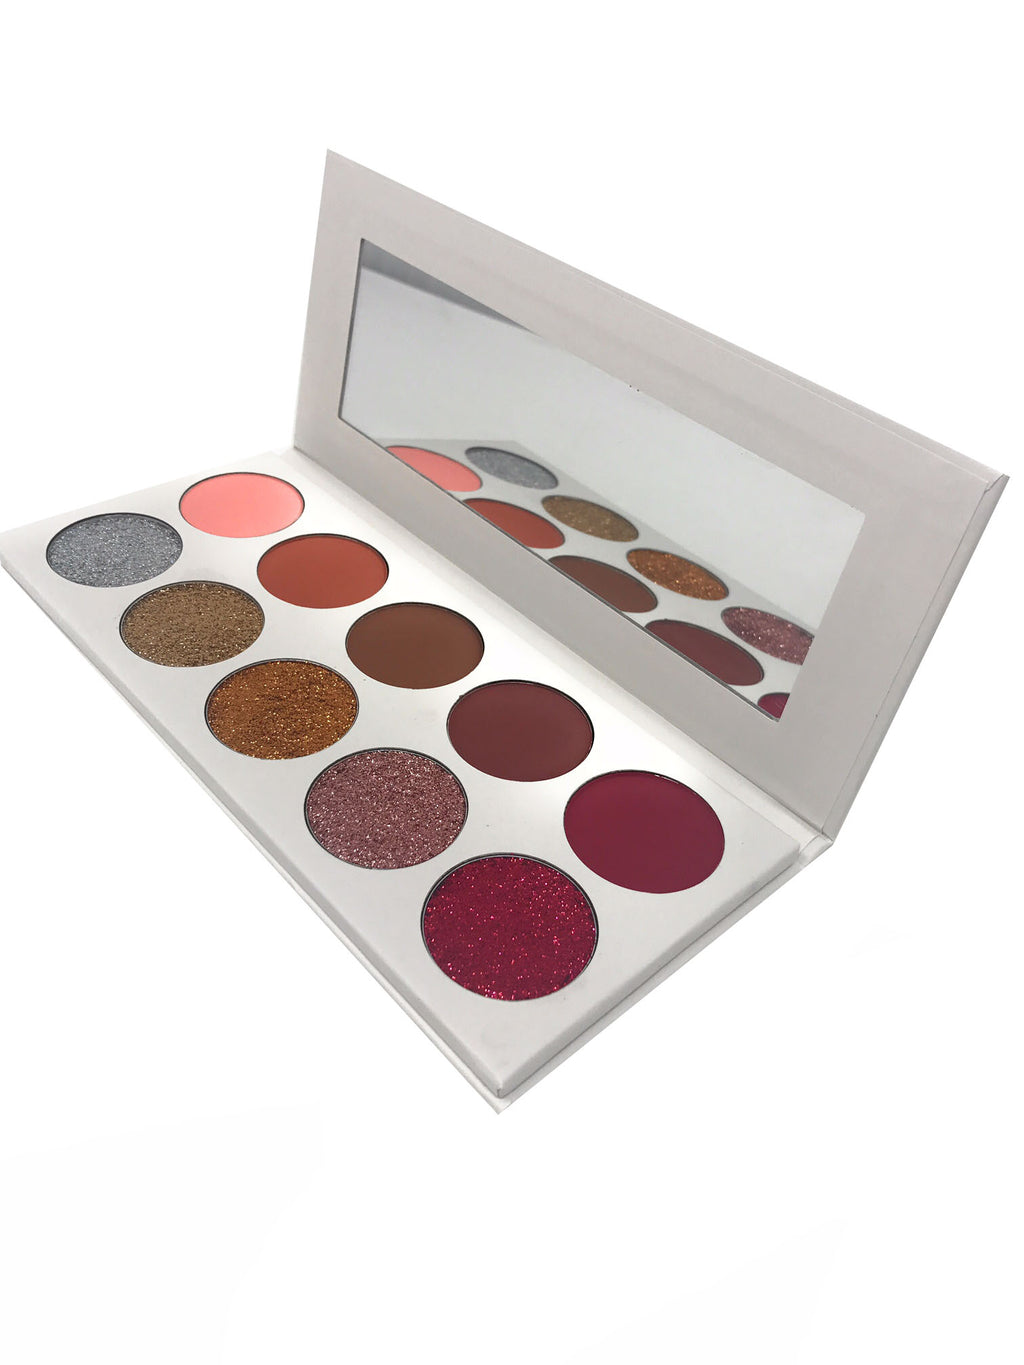 The Sunset Palette by Miinachi Cosmetics Eyeshadow and Glitter Palette Pigmented 8 Shades with Mirror